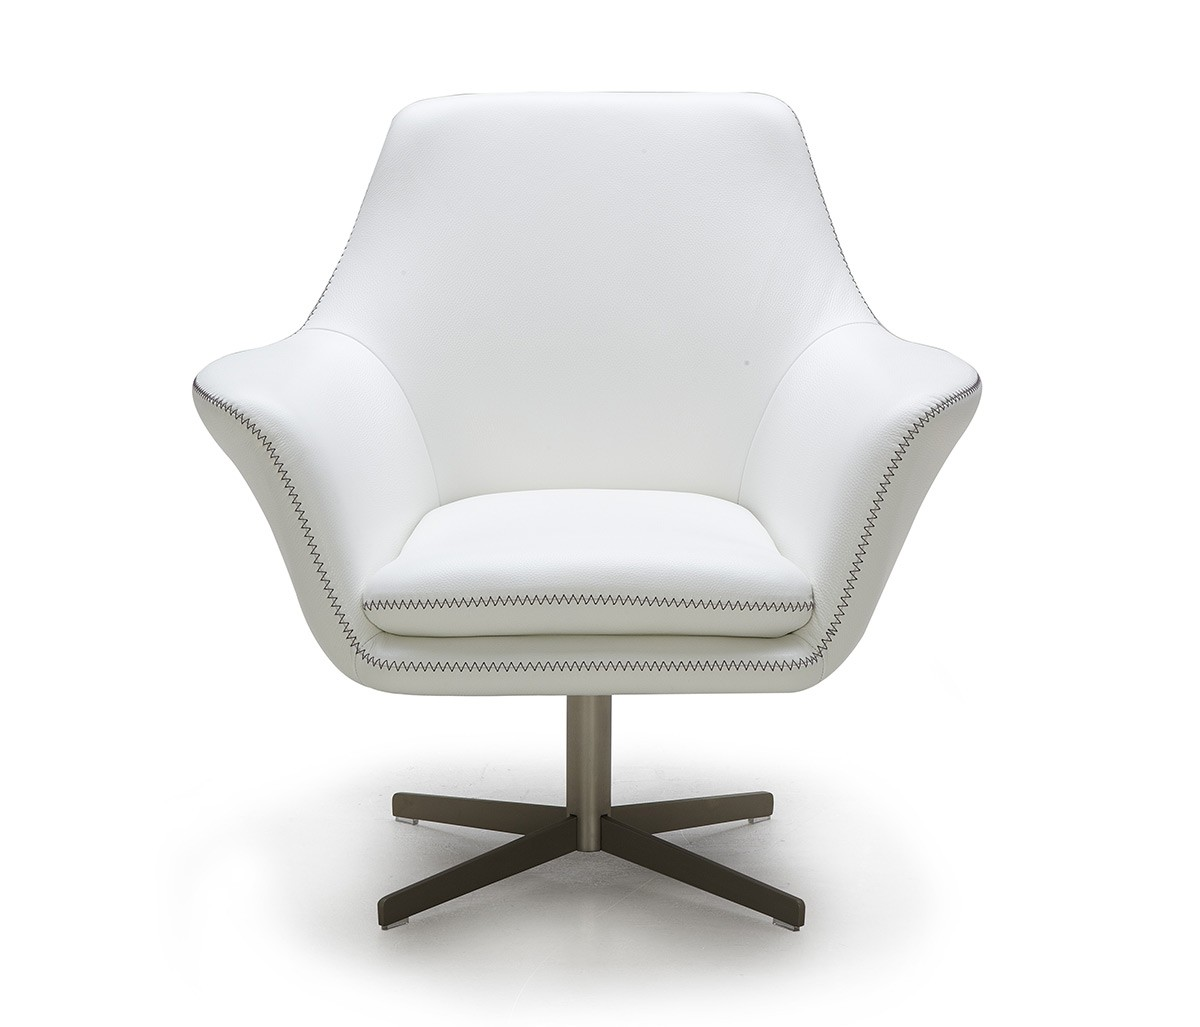 White Leather Swivel Chair Modern White Leather Swivel Lounge Chair Fort Worth Texas